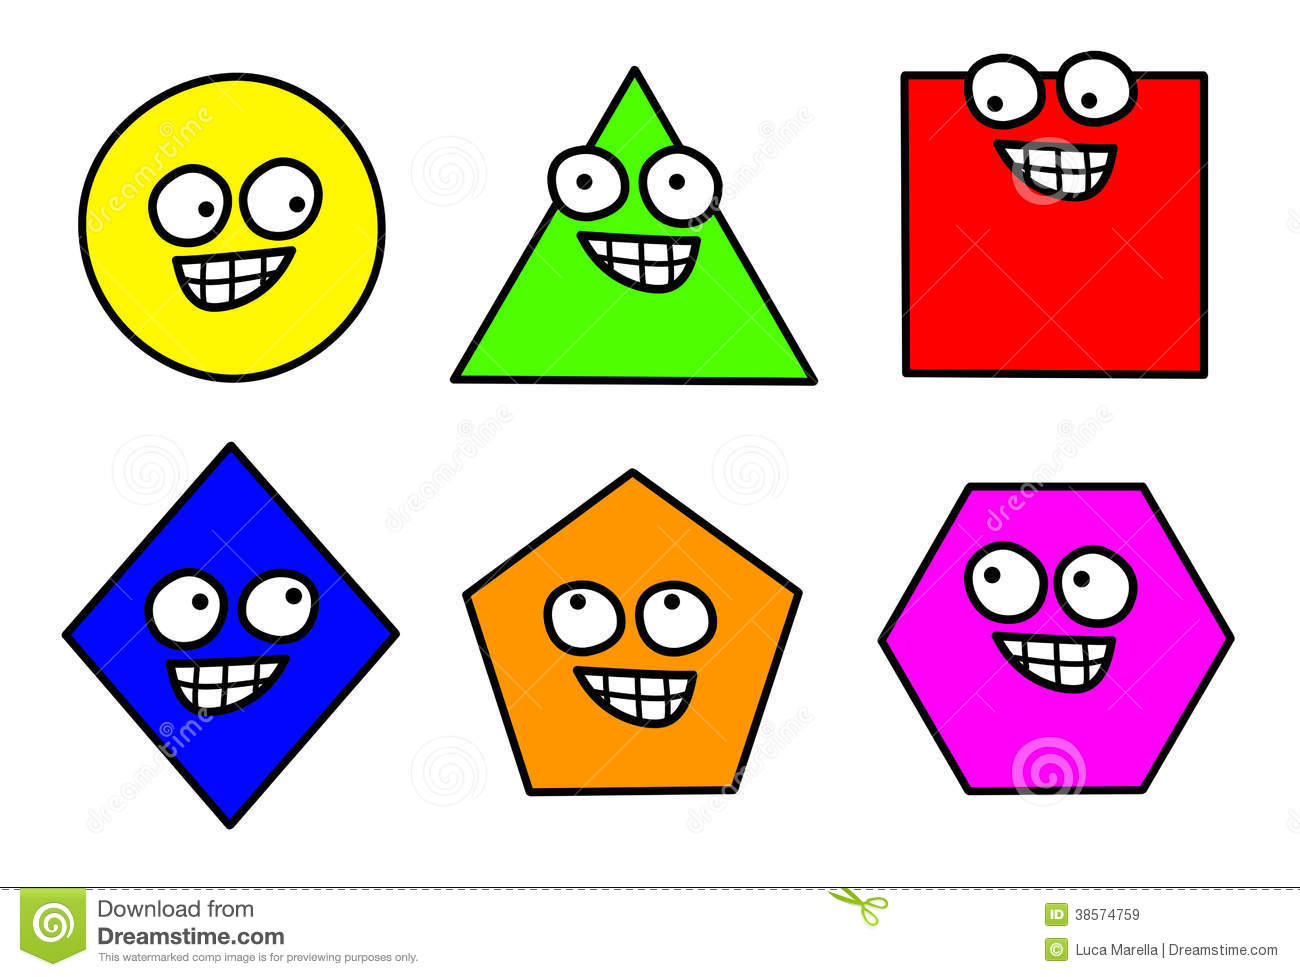 Geometry Clipart | Clipart Panda - Free Clipart Images: www.clipartpanda.com/categories/geometry-clipart